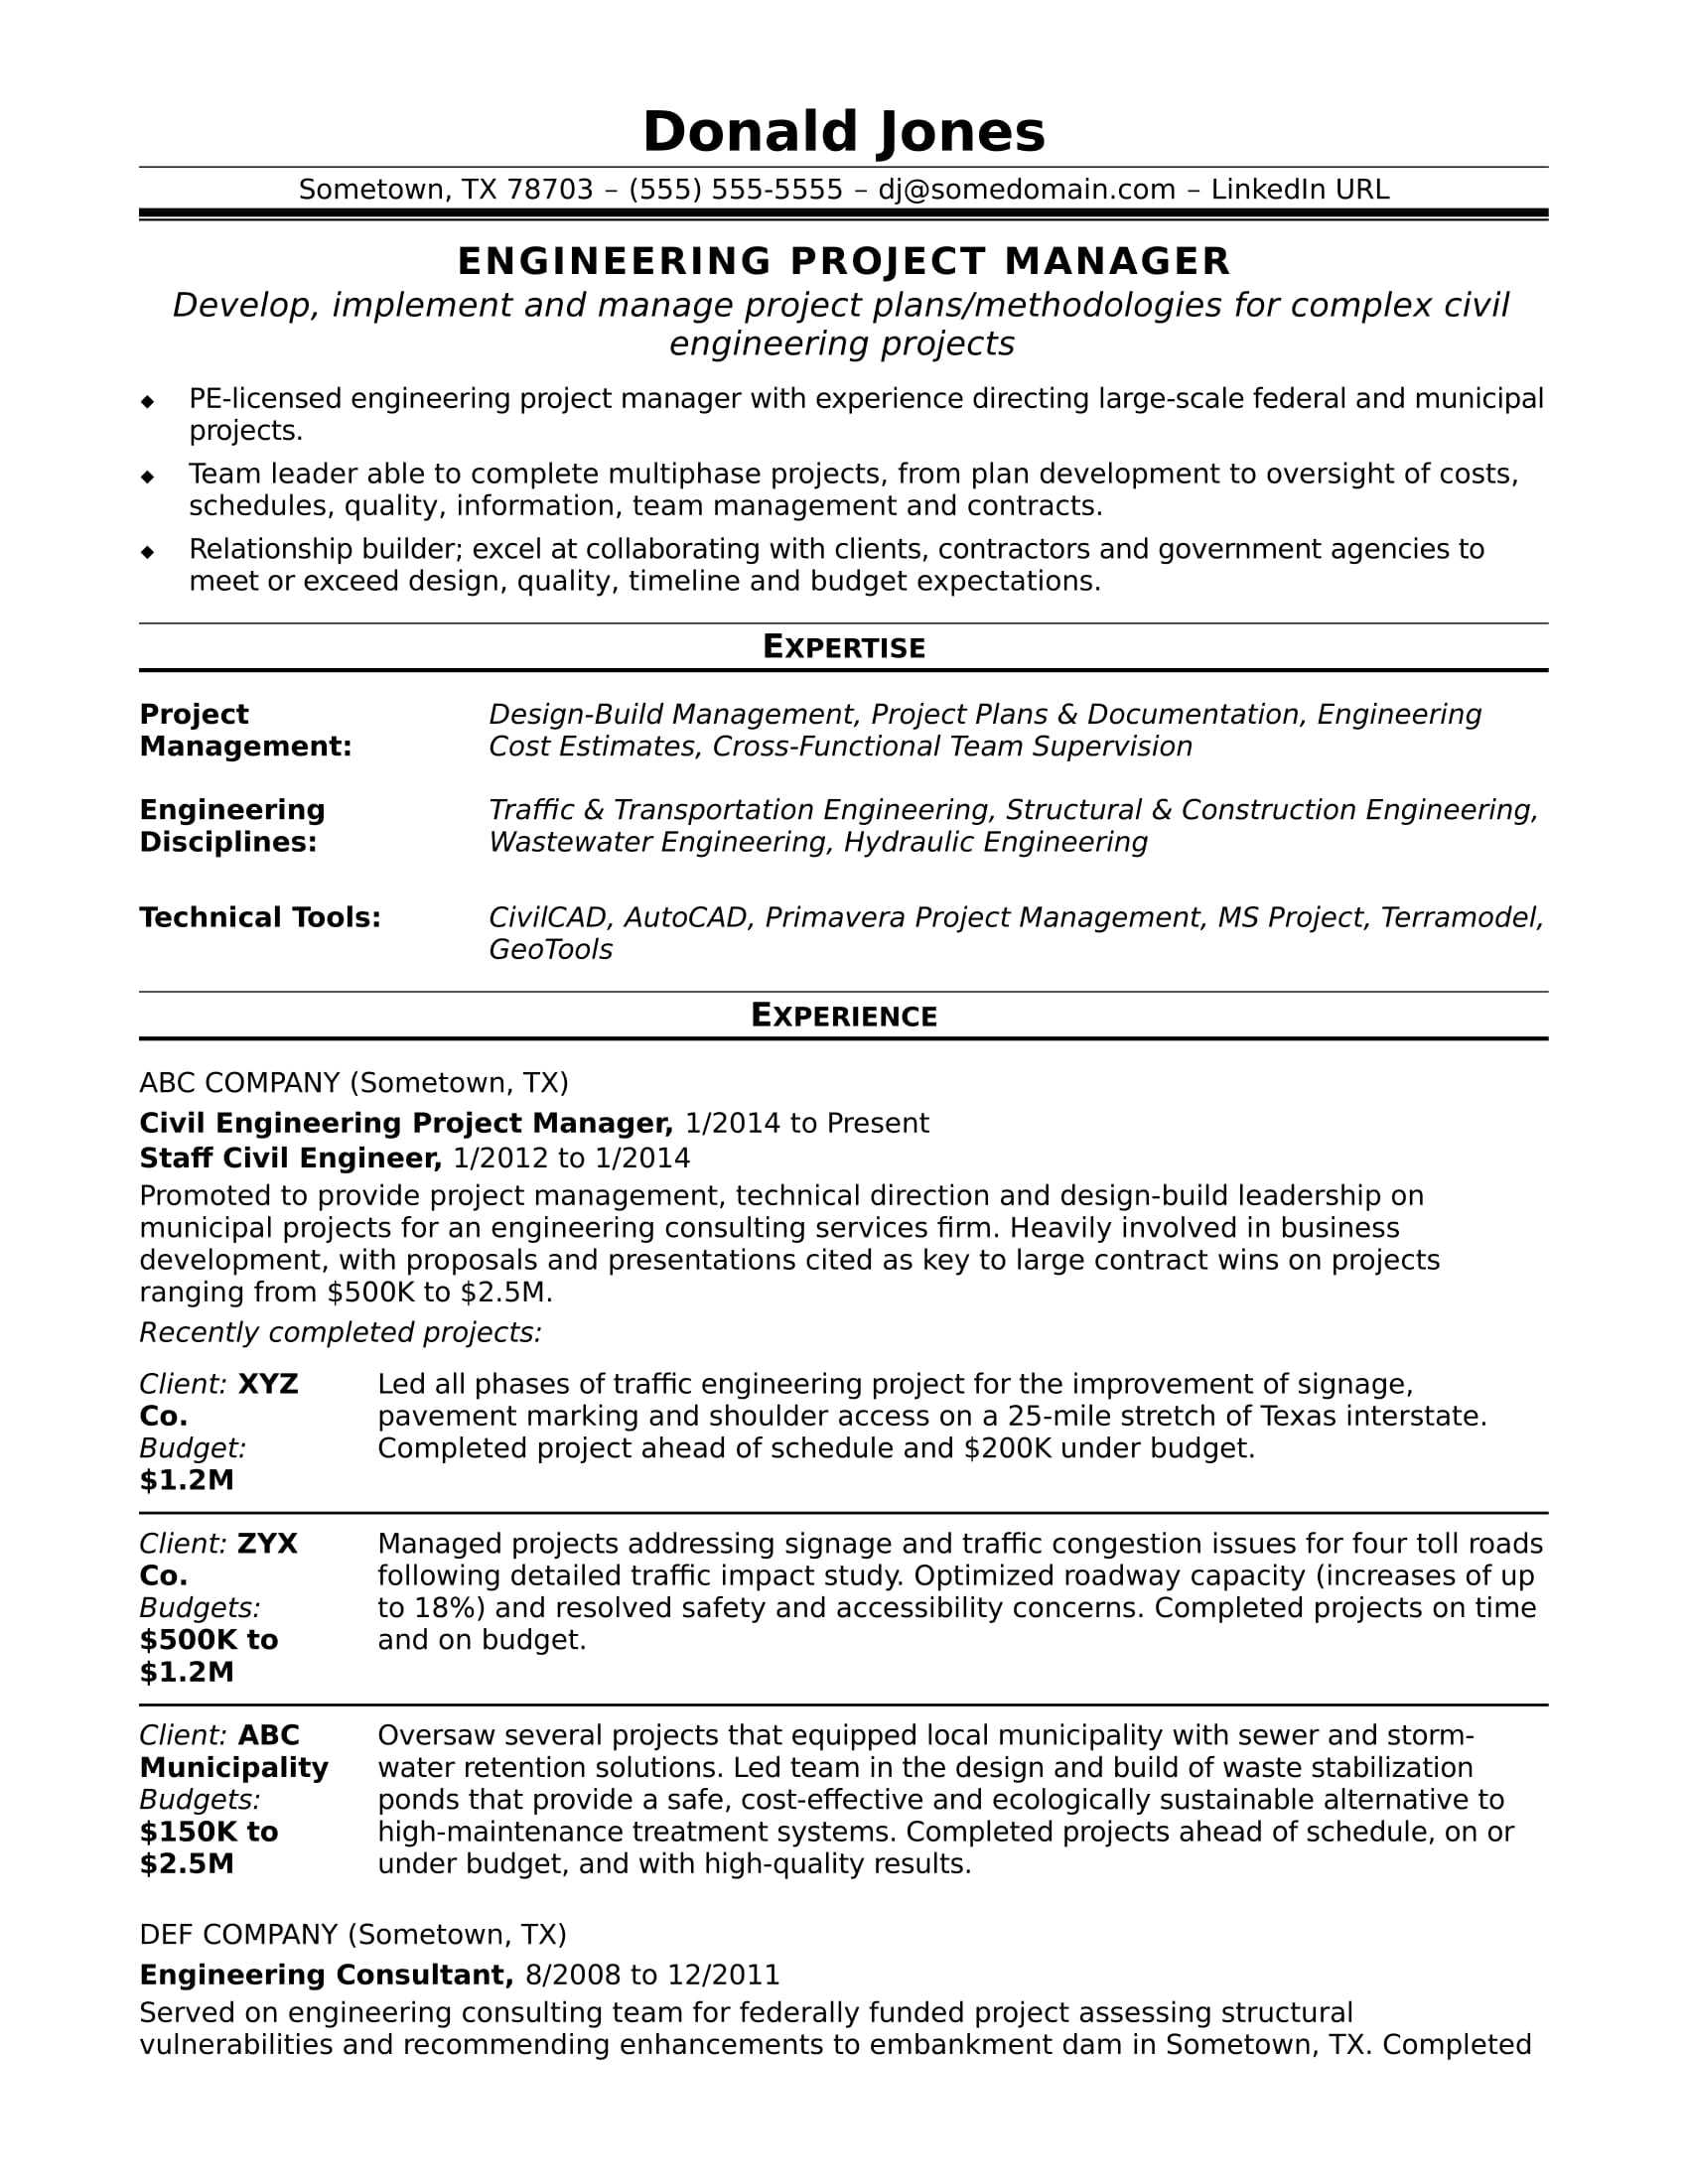 sample resume for a midlevel engineering project manager - Project Engineer Resume Template